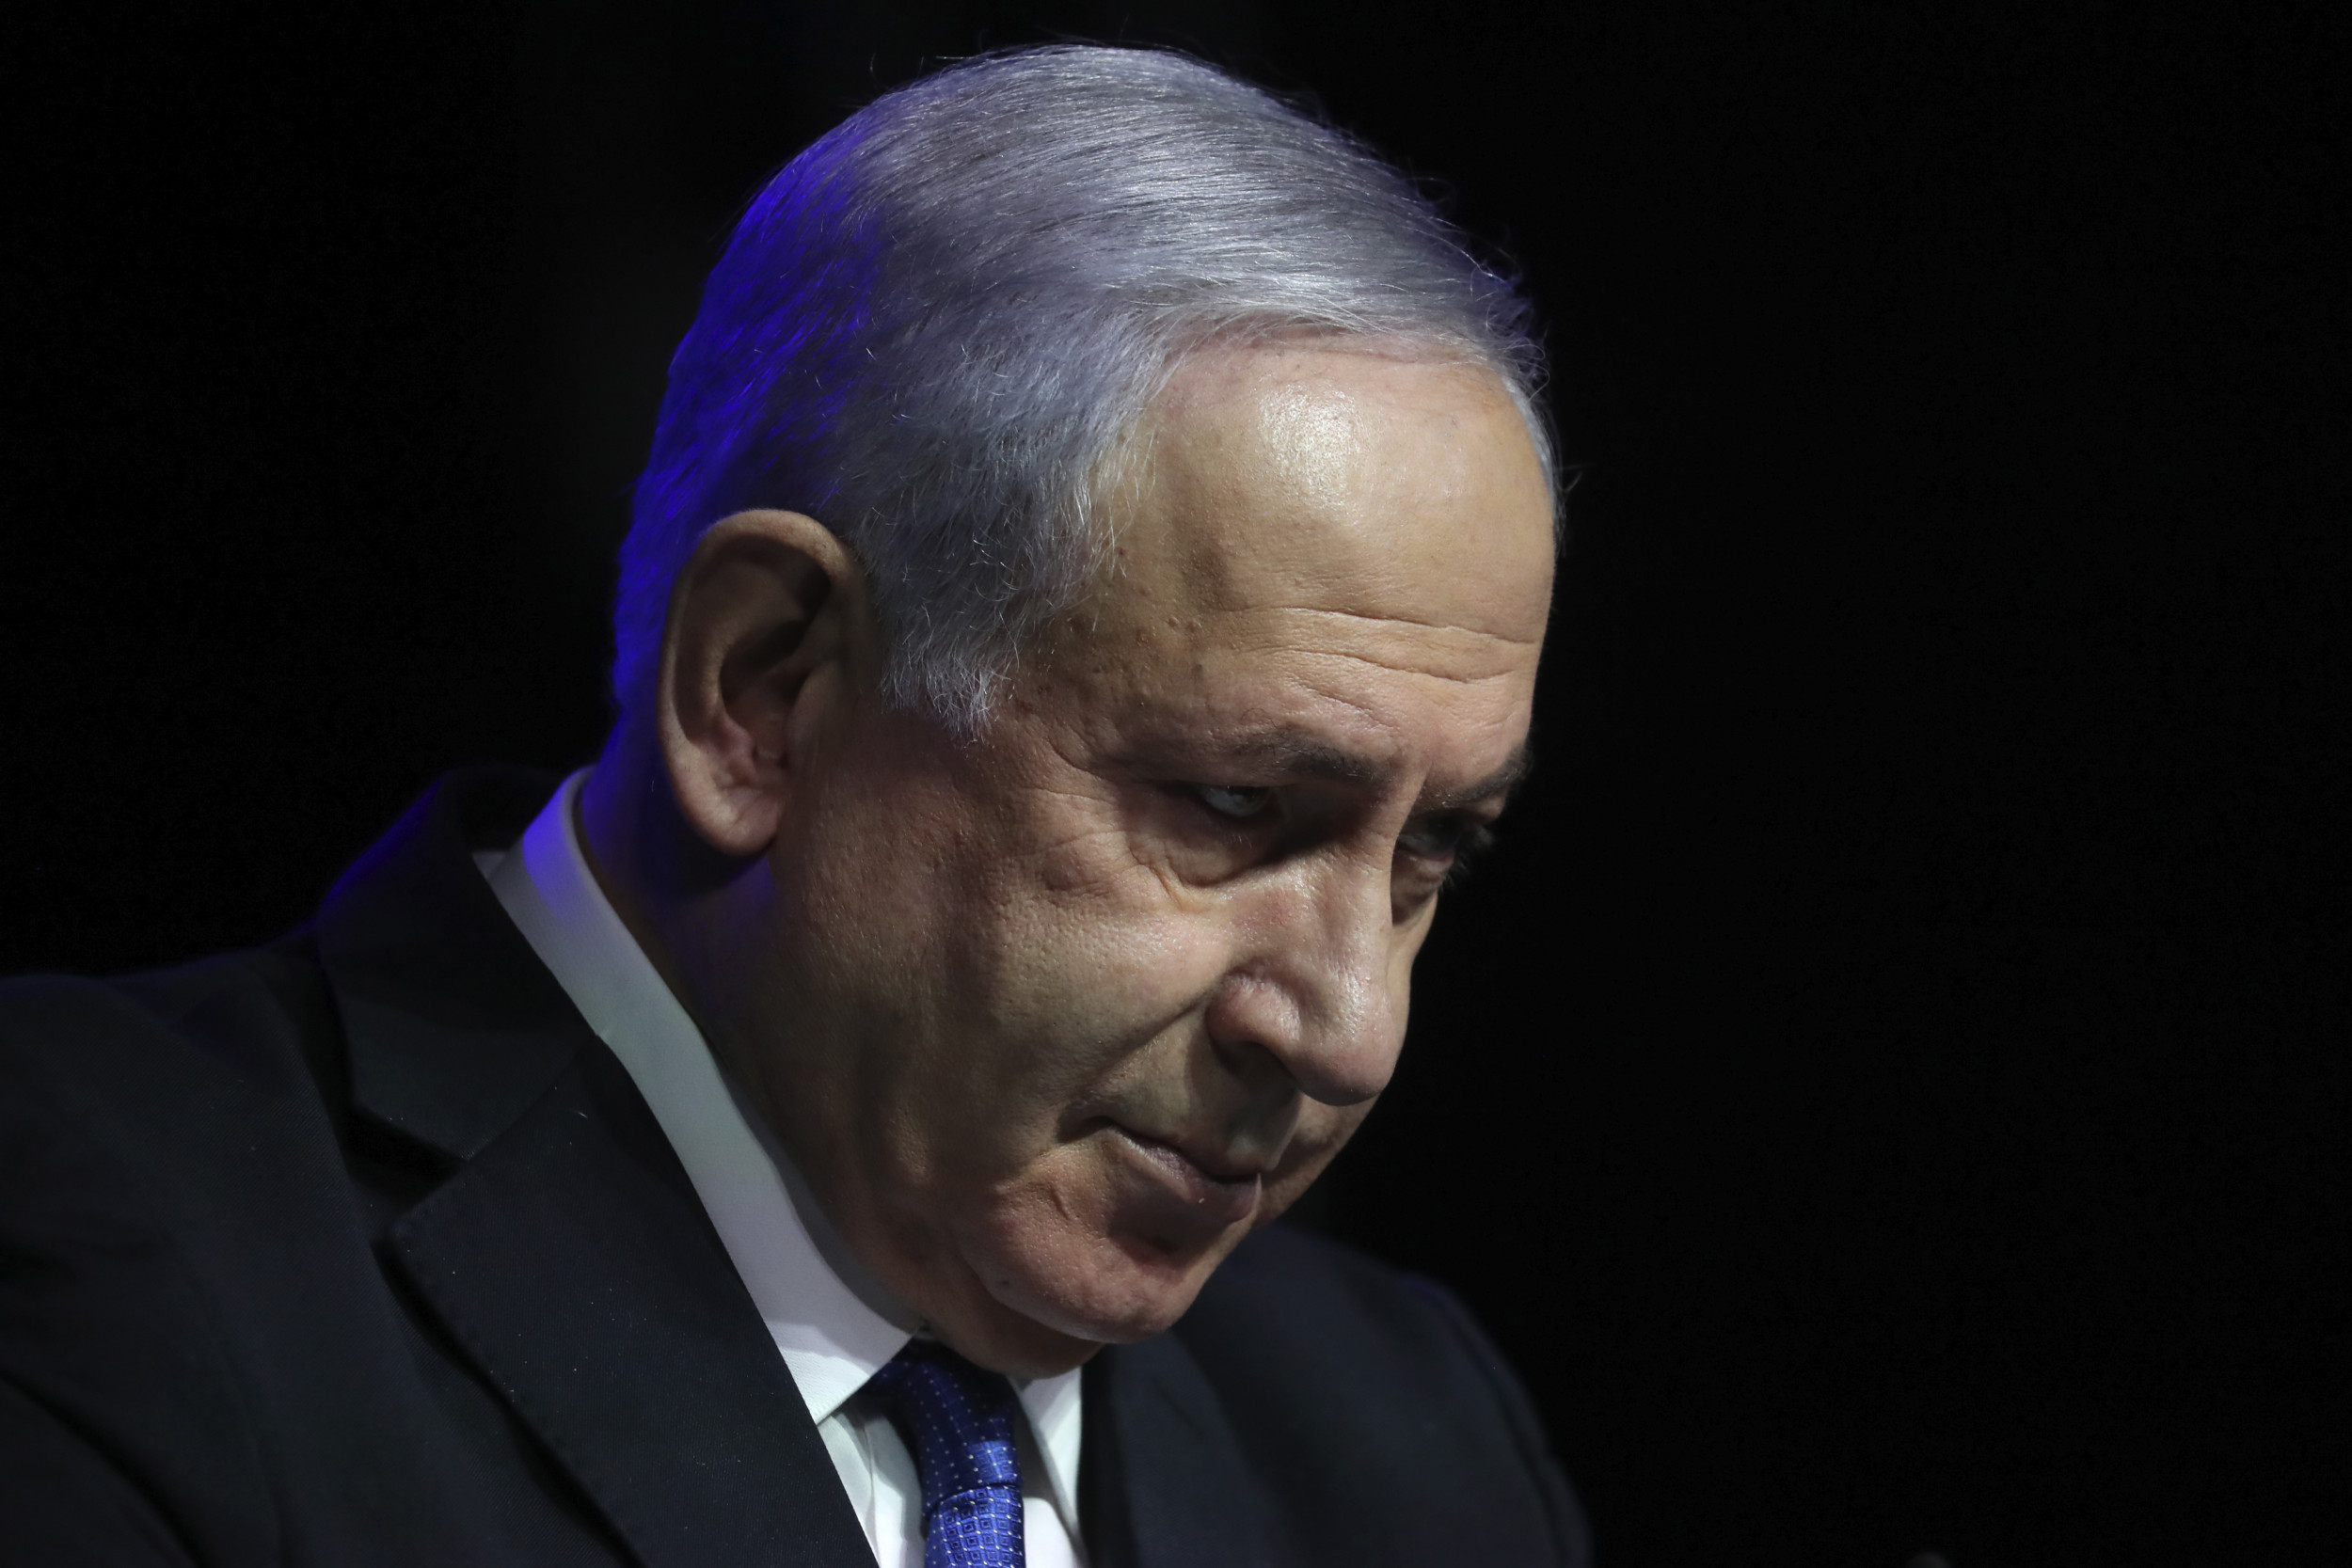 With Days Left in Office, Benjamin Netanyahu Accuses Opposition of Election Fraud - Newsweek